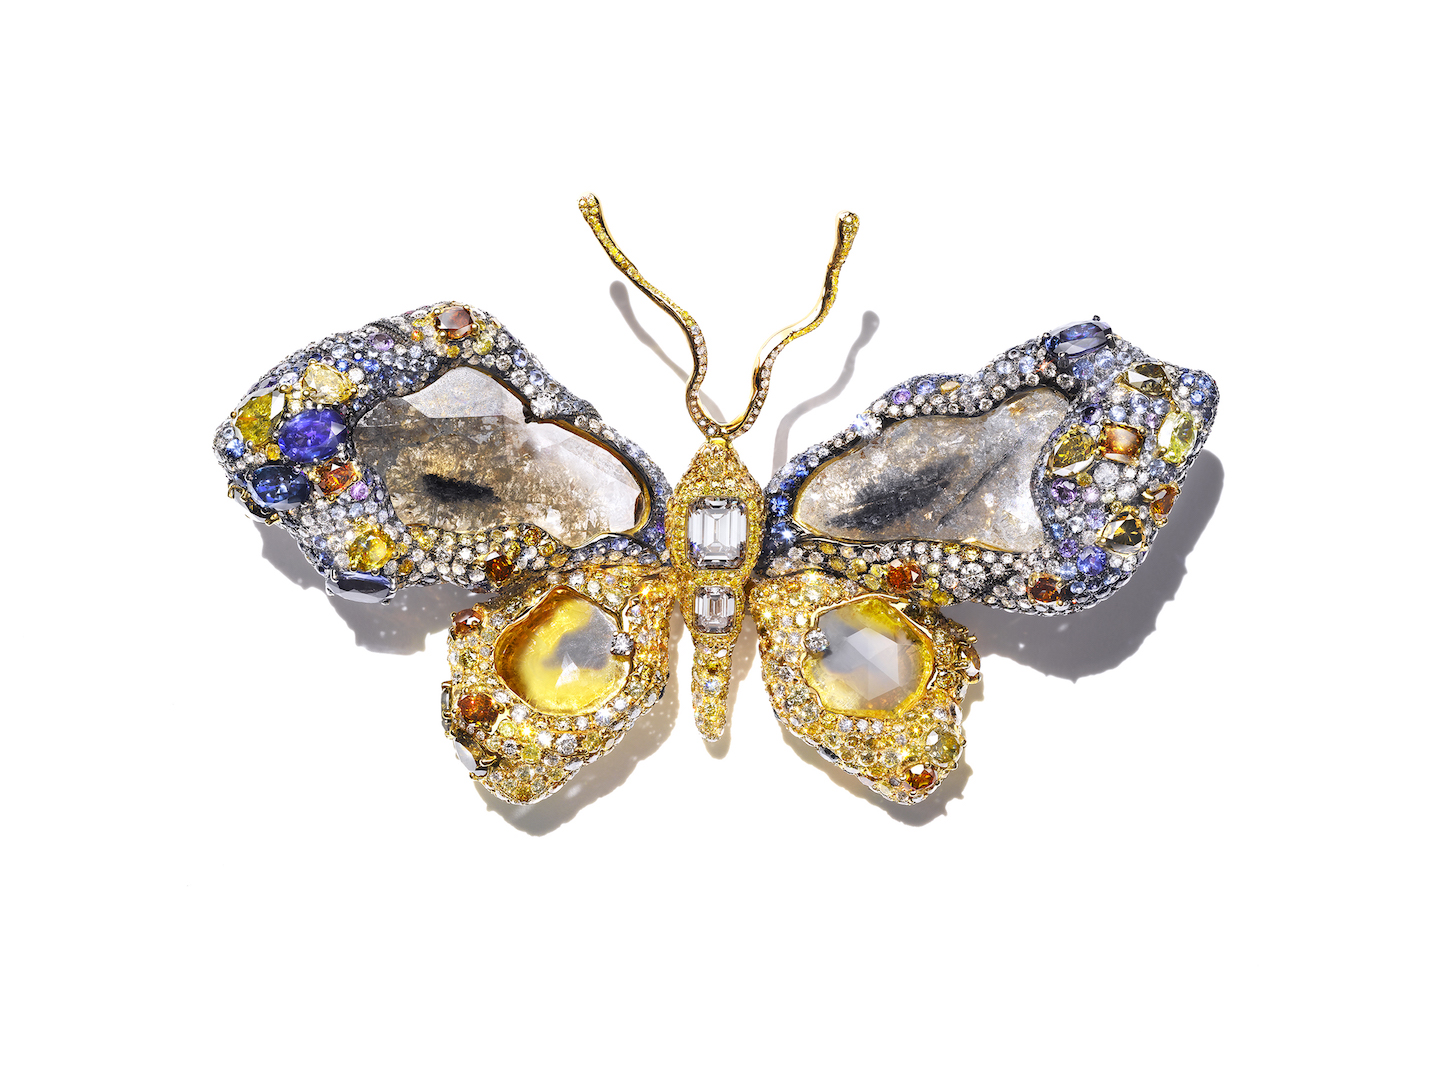 CINDY CHAO The Art Jewel 2009 Royal Butterfly Brooch